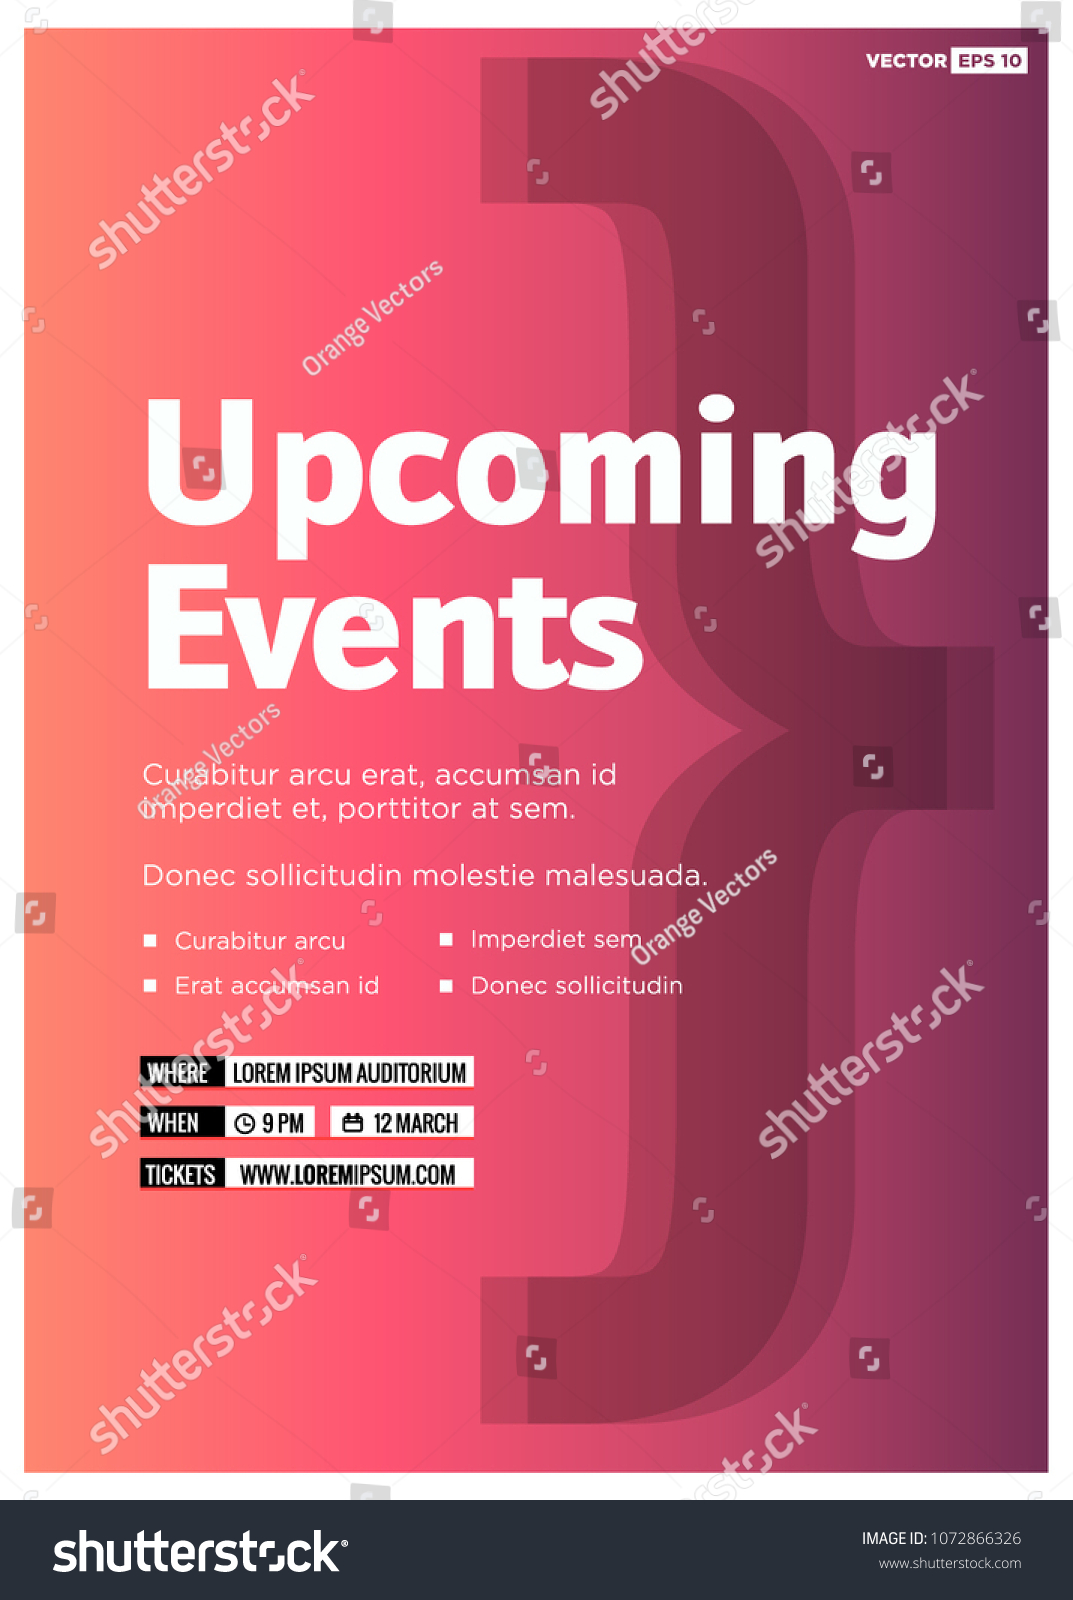 Upcoming Event Flyer Template from image.shutterstock.com